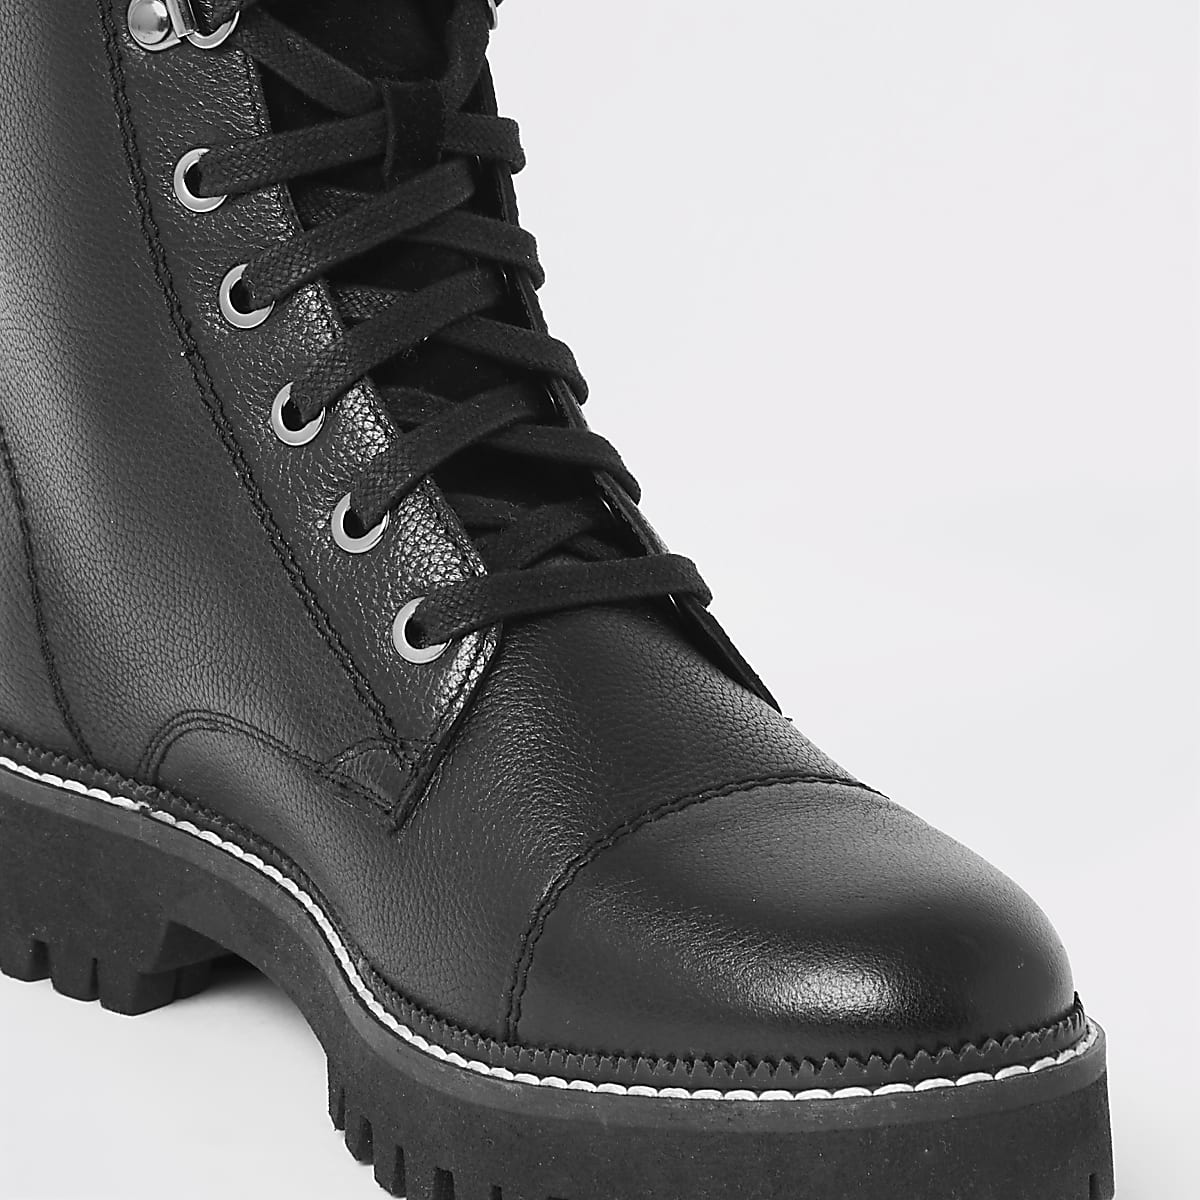 dbf4f742dbb Black leather lace-up hiking boots